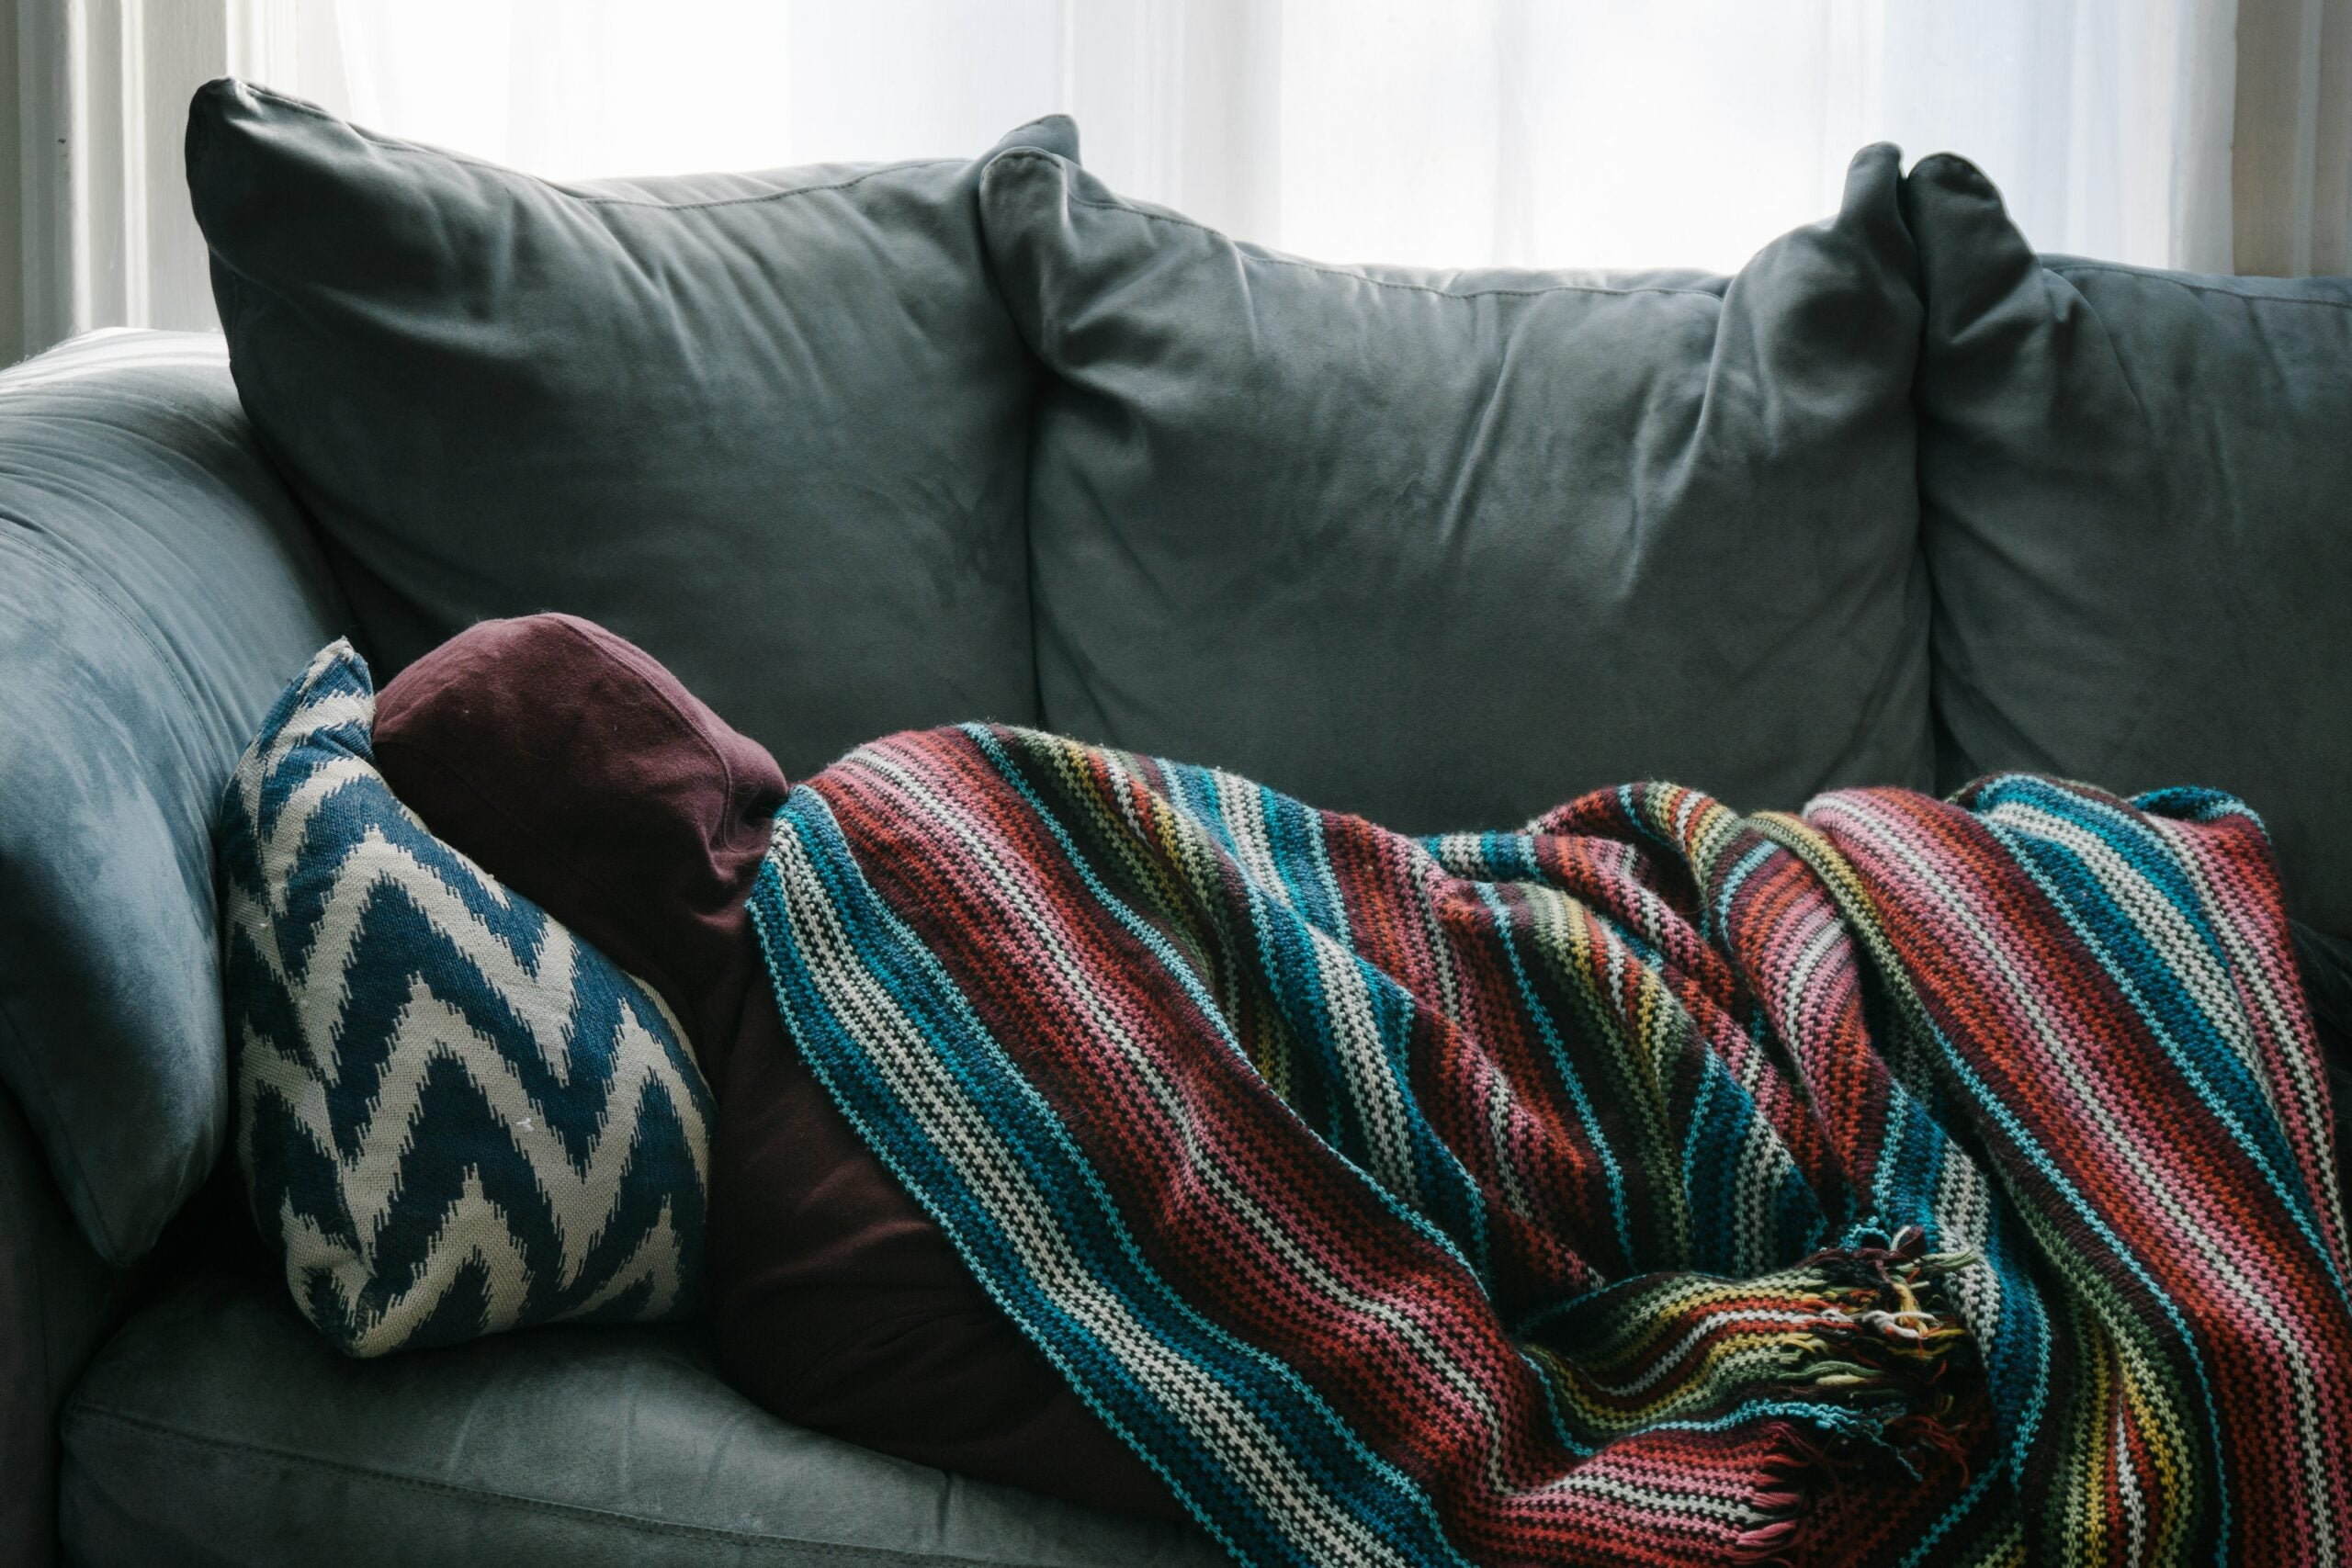 person lying on couch with blanket over them